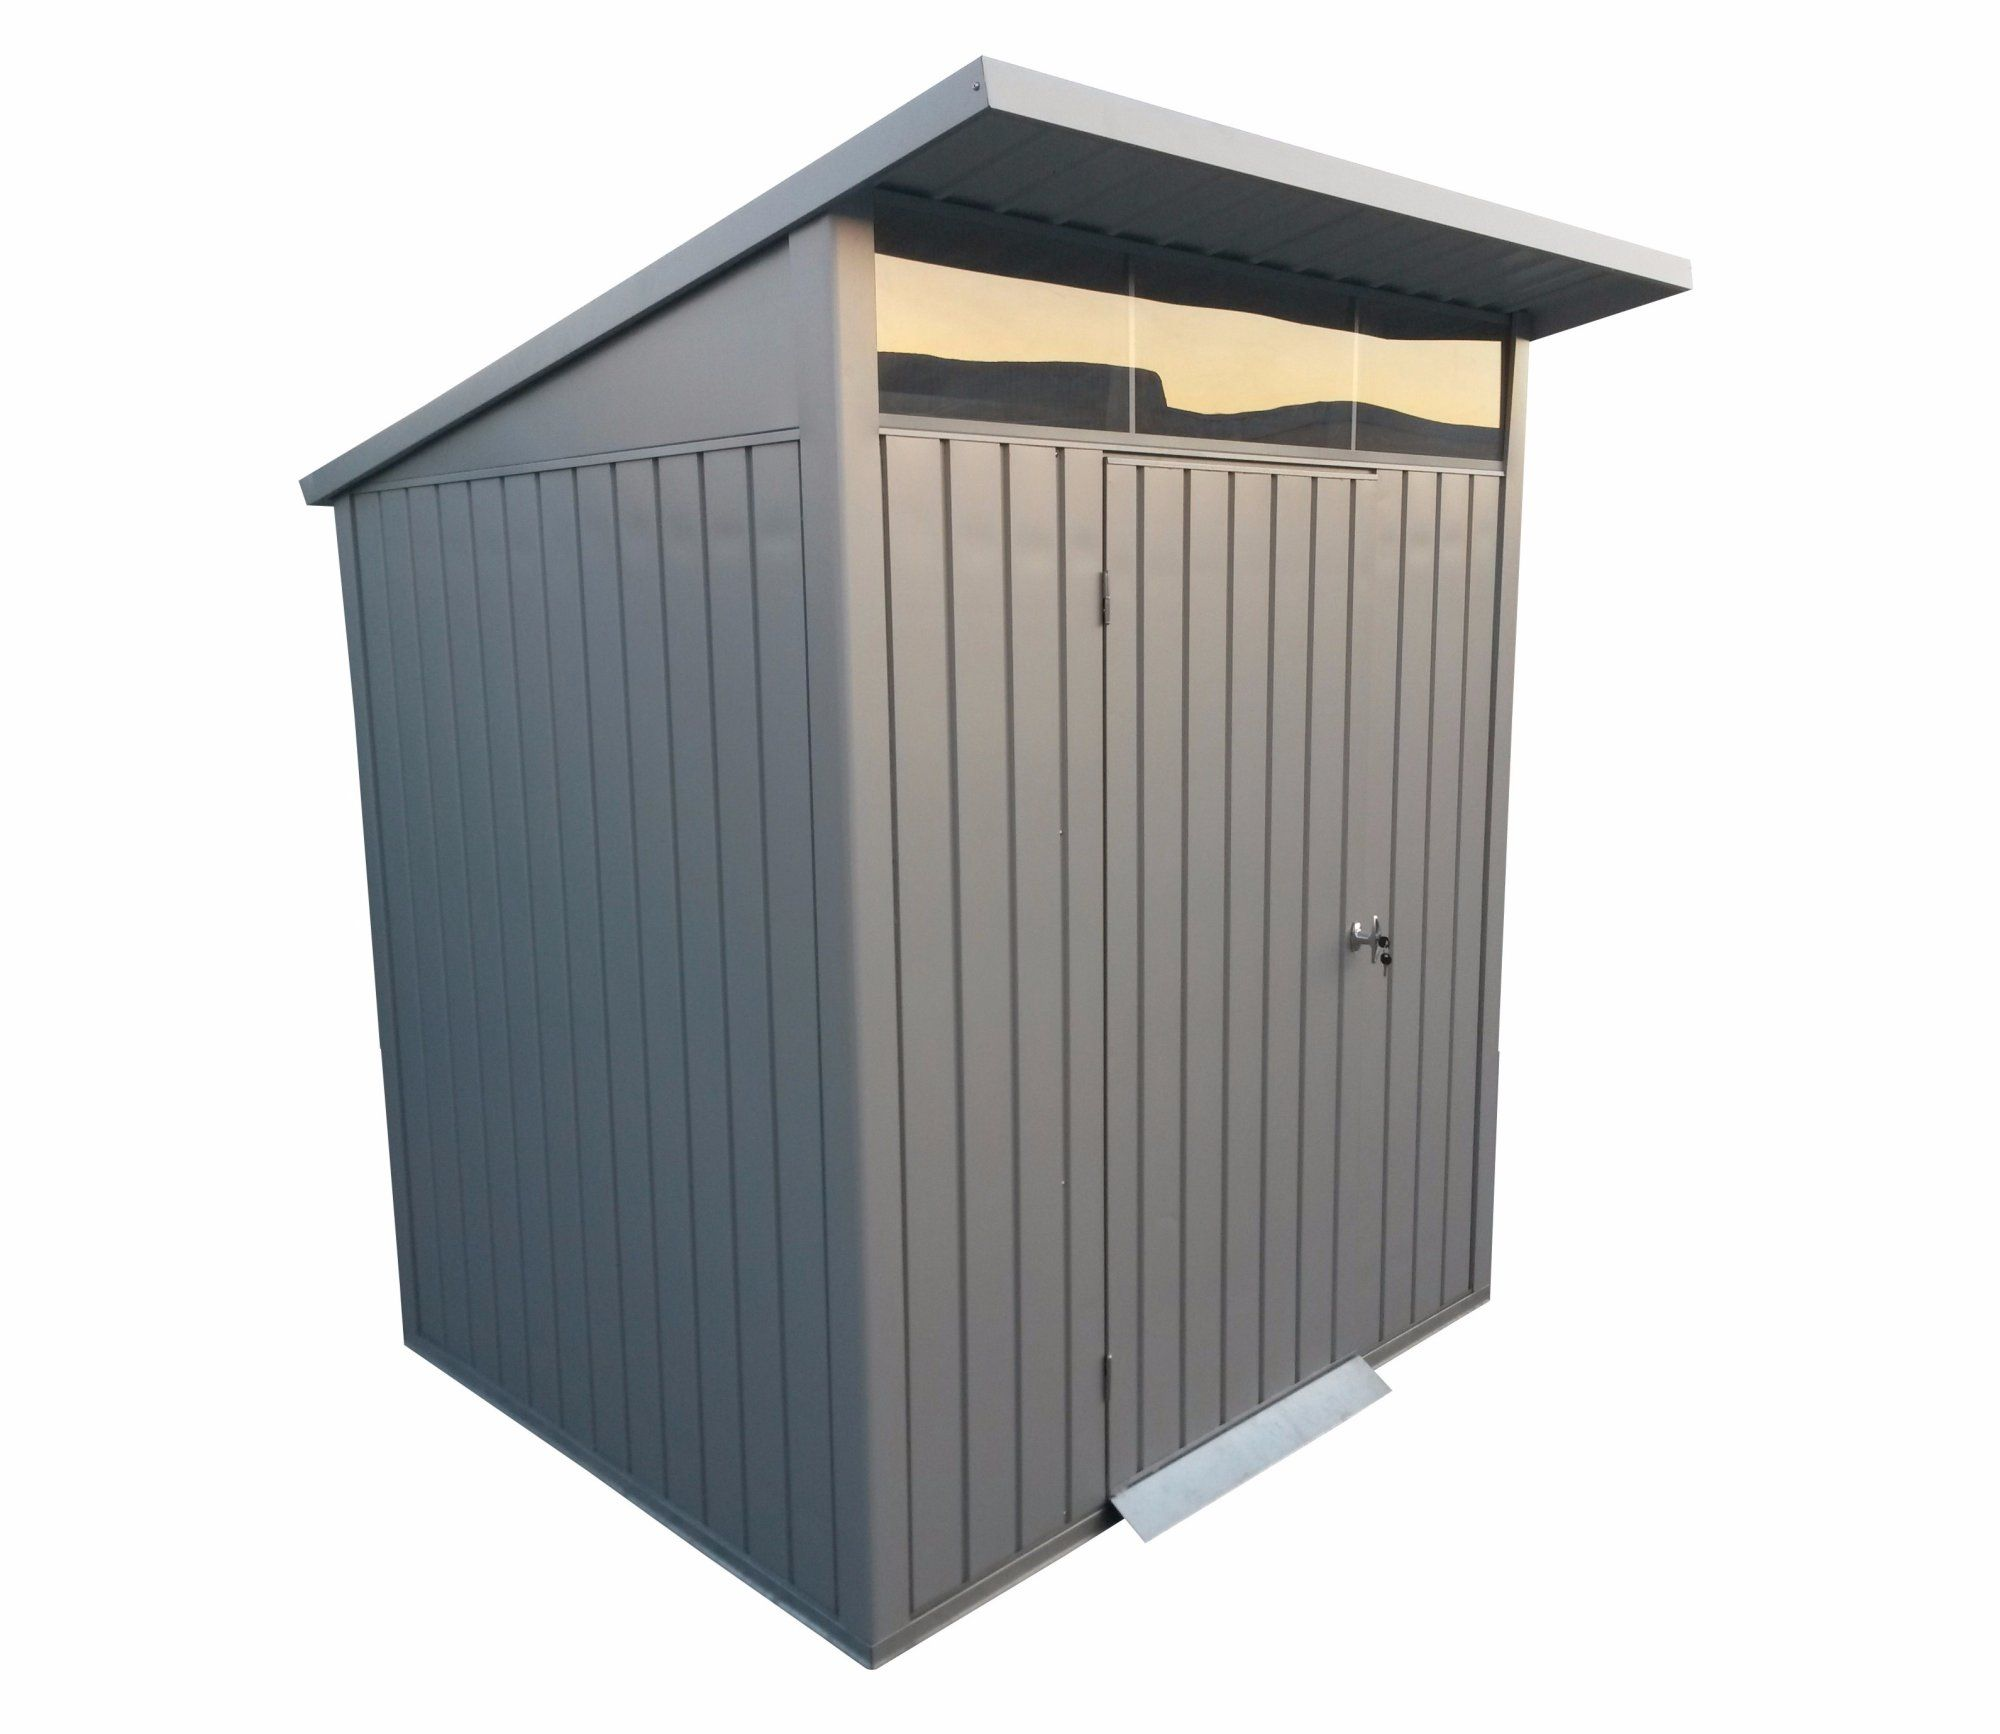 duramax palladium 6ft x 5ft metal shed